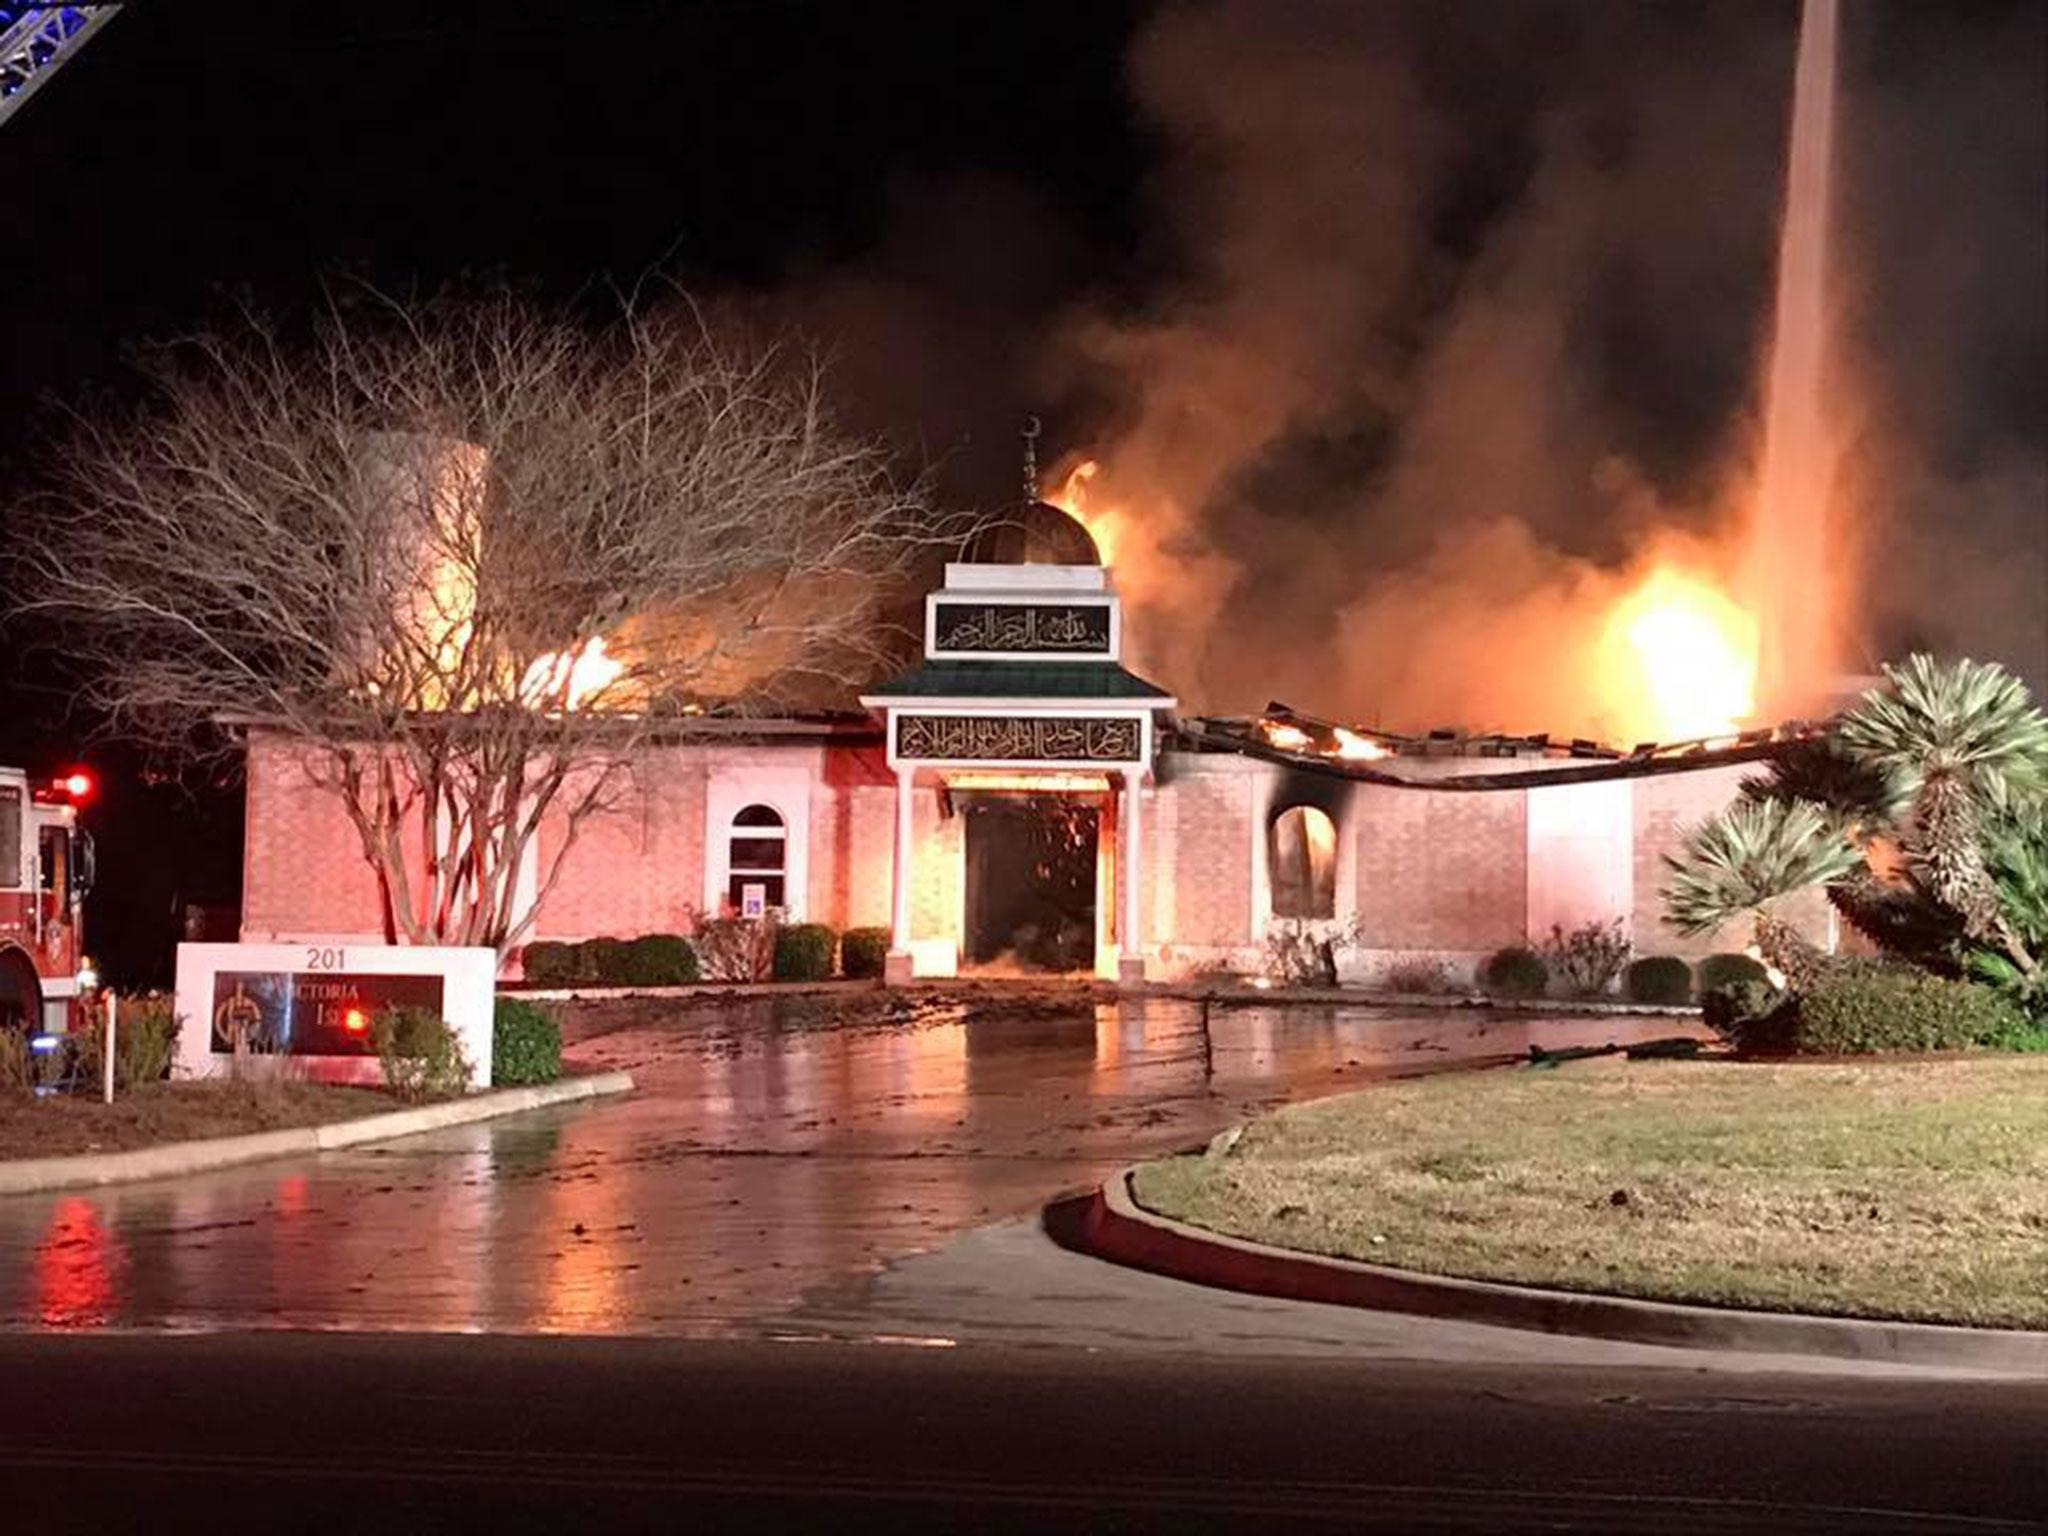 Jewish people give Muslims key to their synagogue after town's mosque burns down